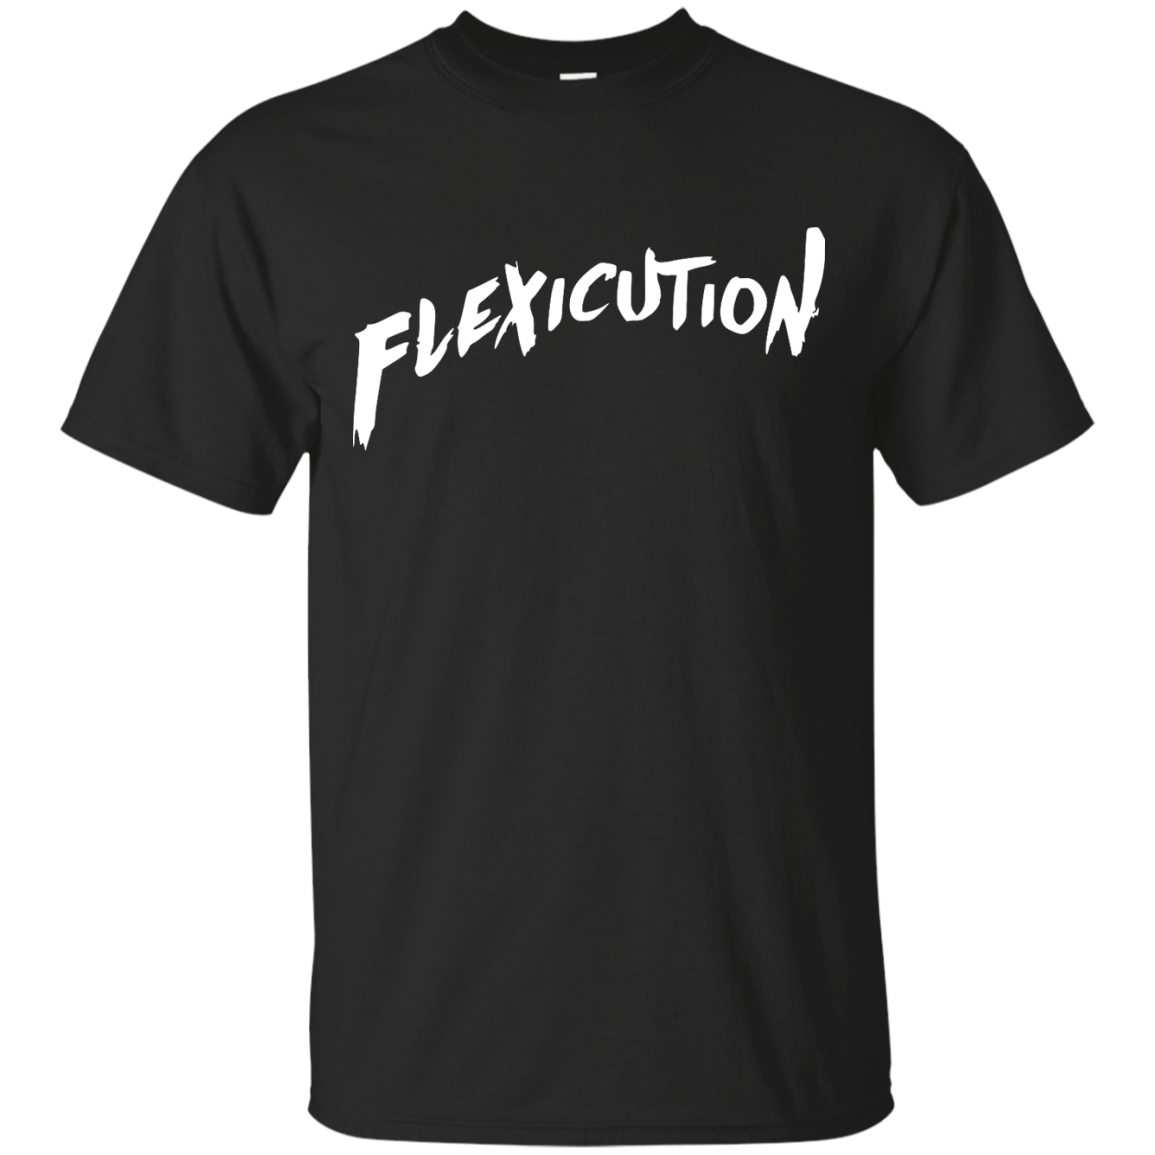 image 530px Flexicution Logic T Shirt, Hoodies, Tank Top